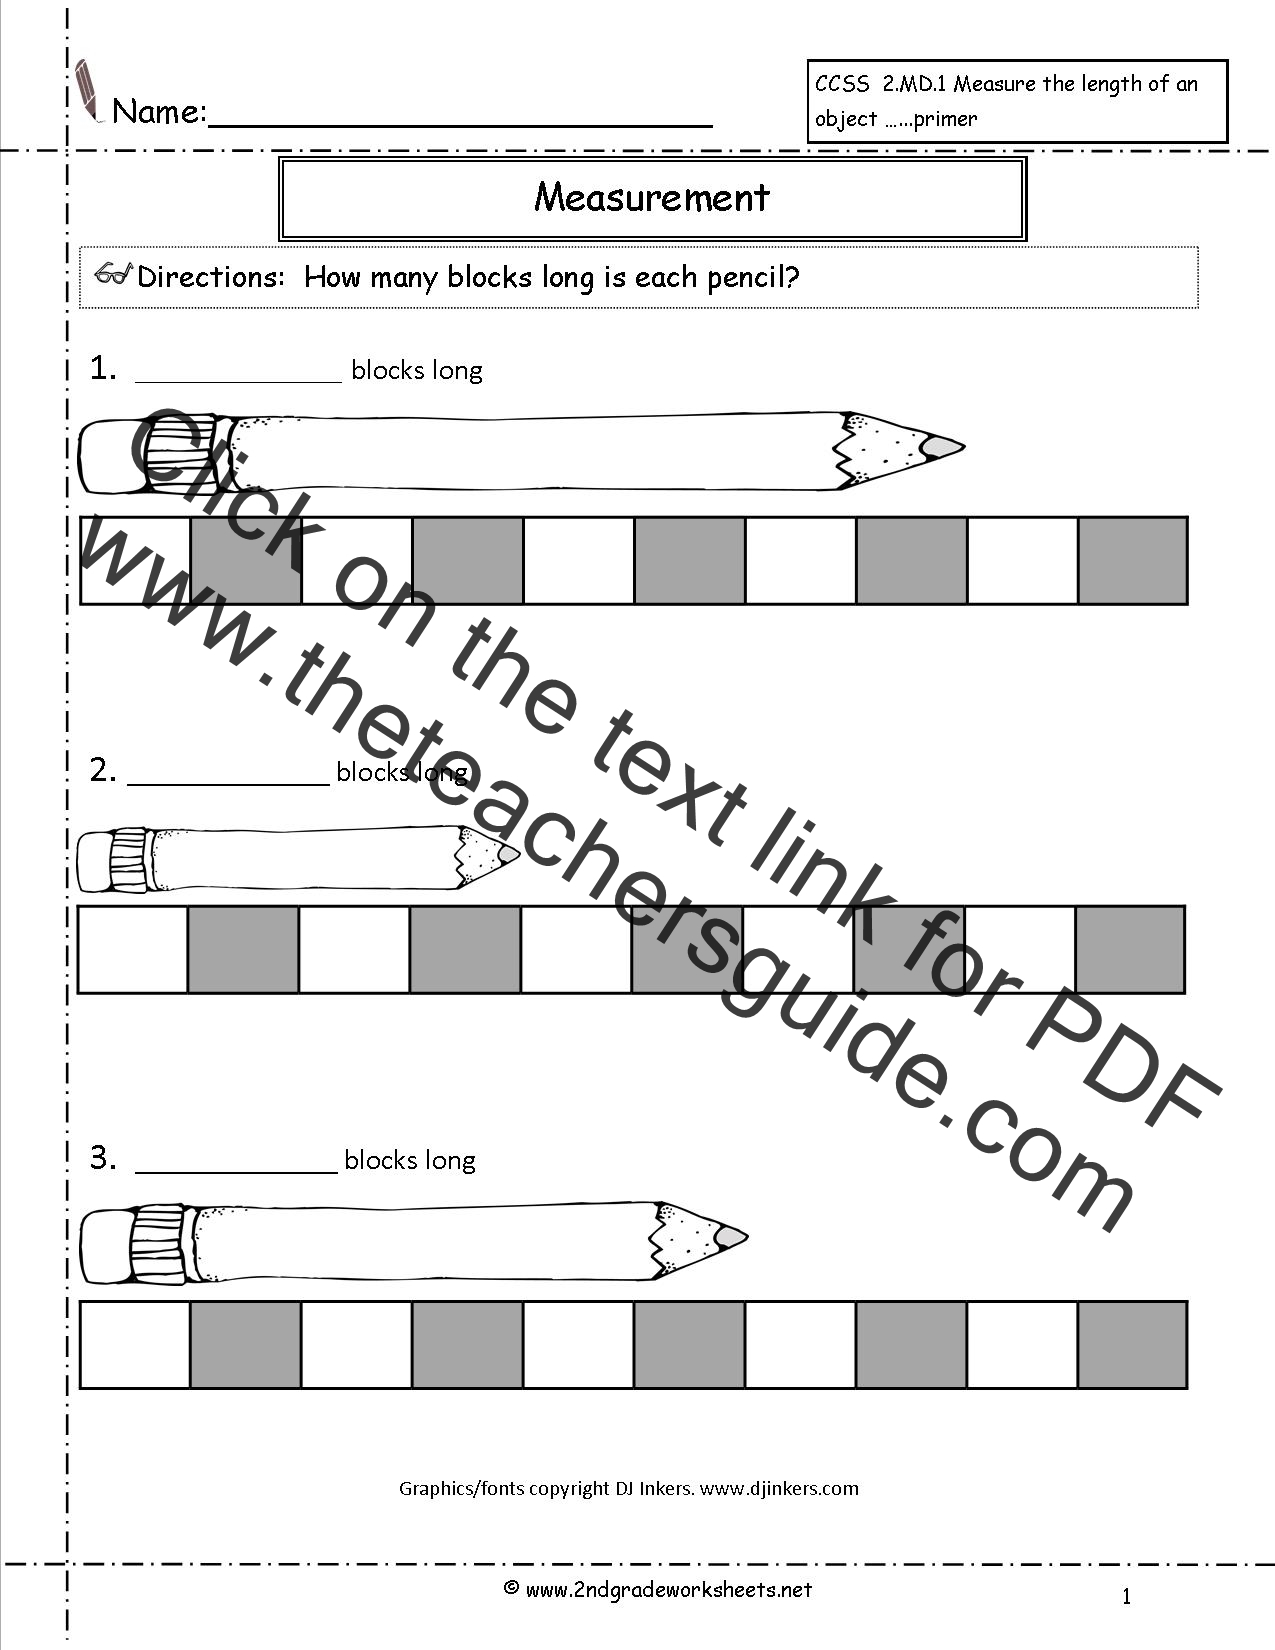 CCSS 2 MD 1 Worksheets Measuring Worksheets